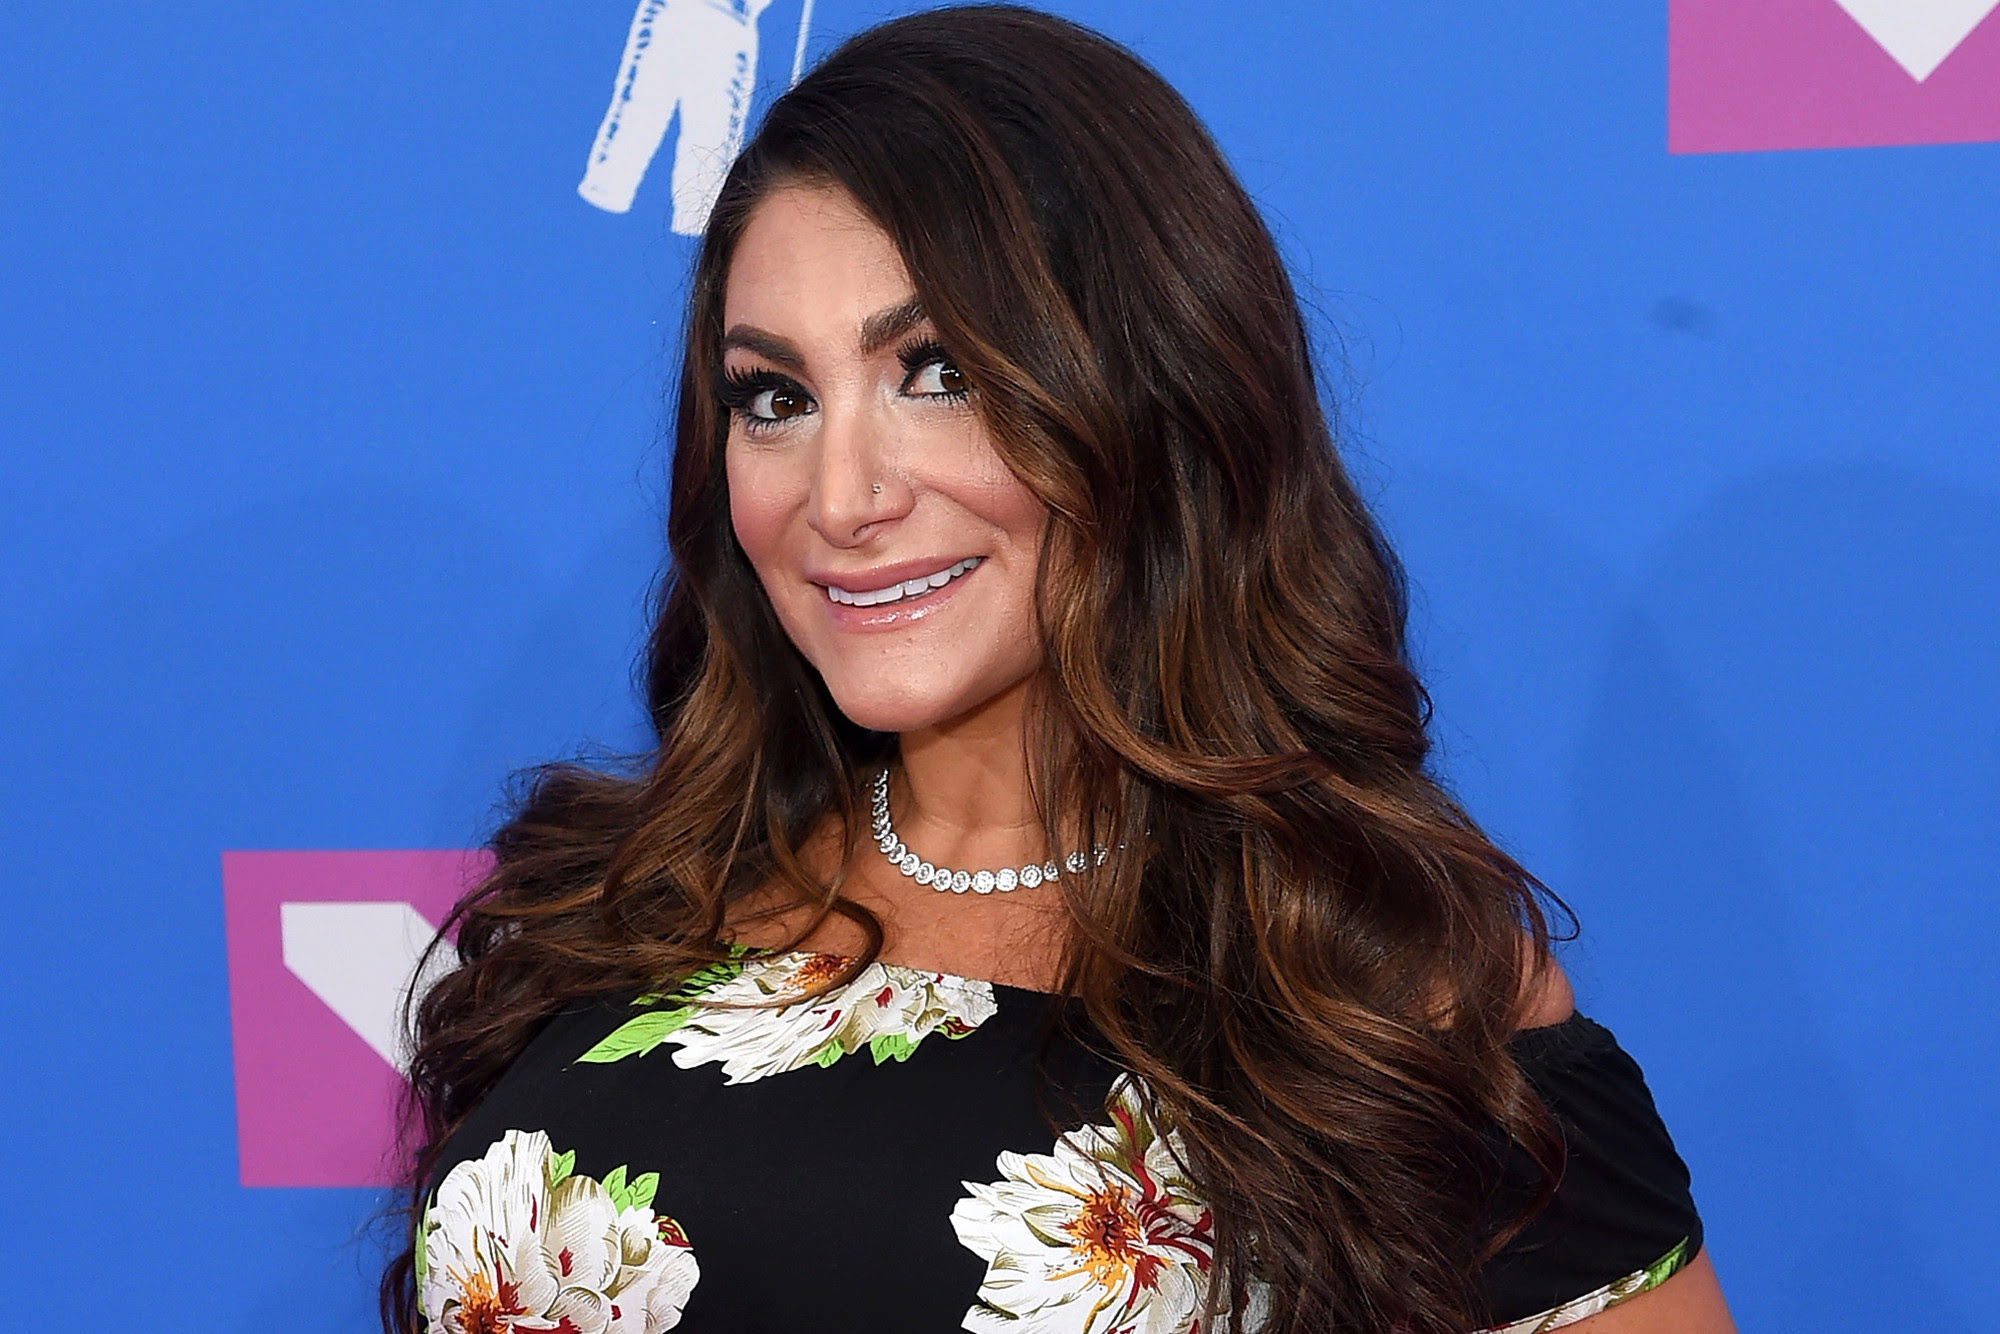 jersey-shore-star-deena-cortese-reveals-motherhood-is-harder-than-she-expected